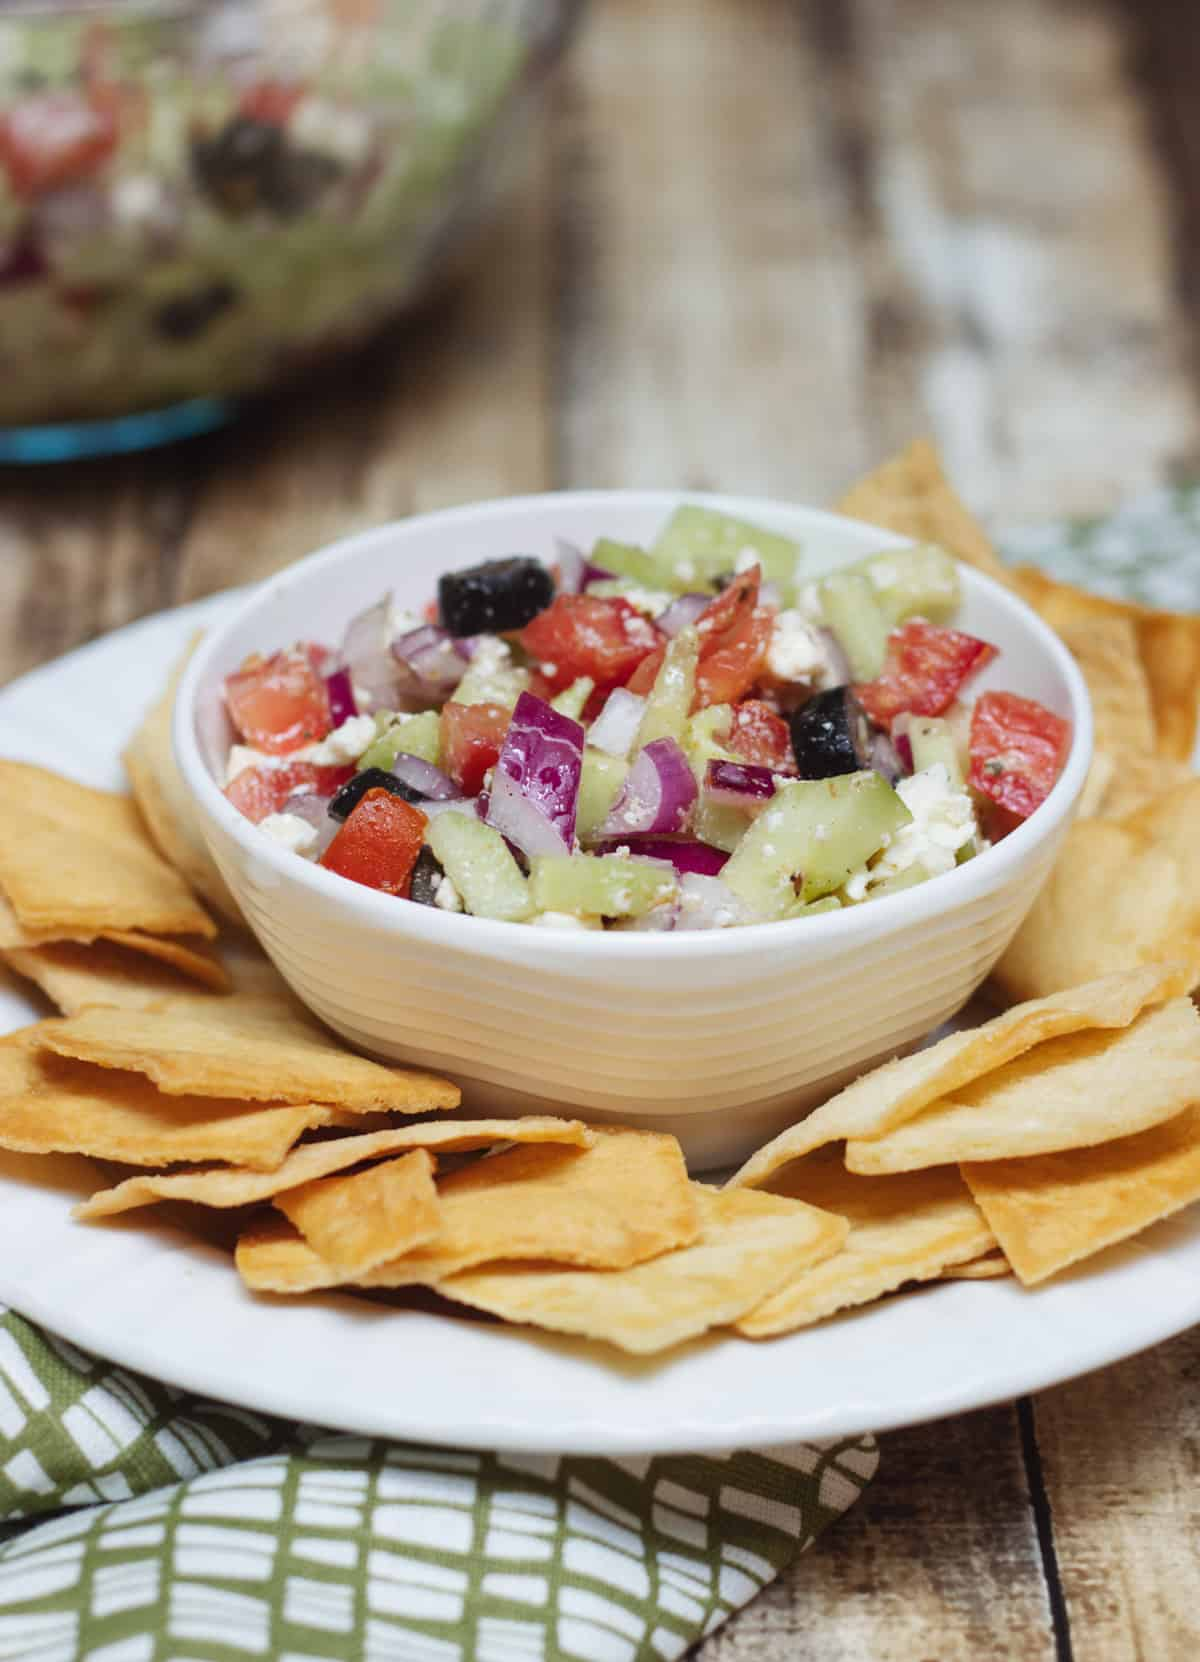 Greek salsa with tomatoes, purple onion, black olives, cucumber and feta cheese in a white bowl surrounded by pita chips.